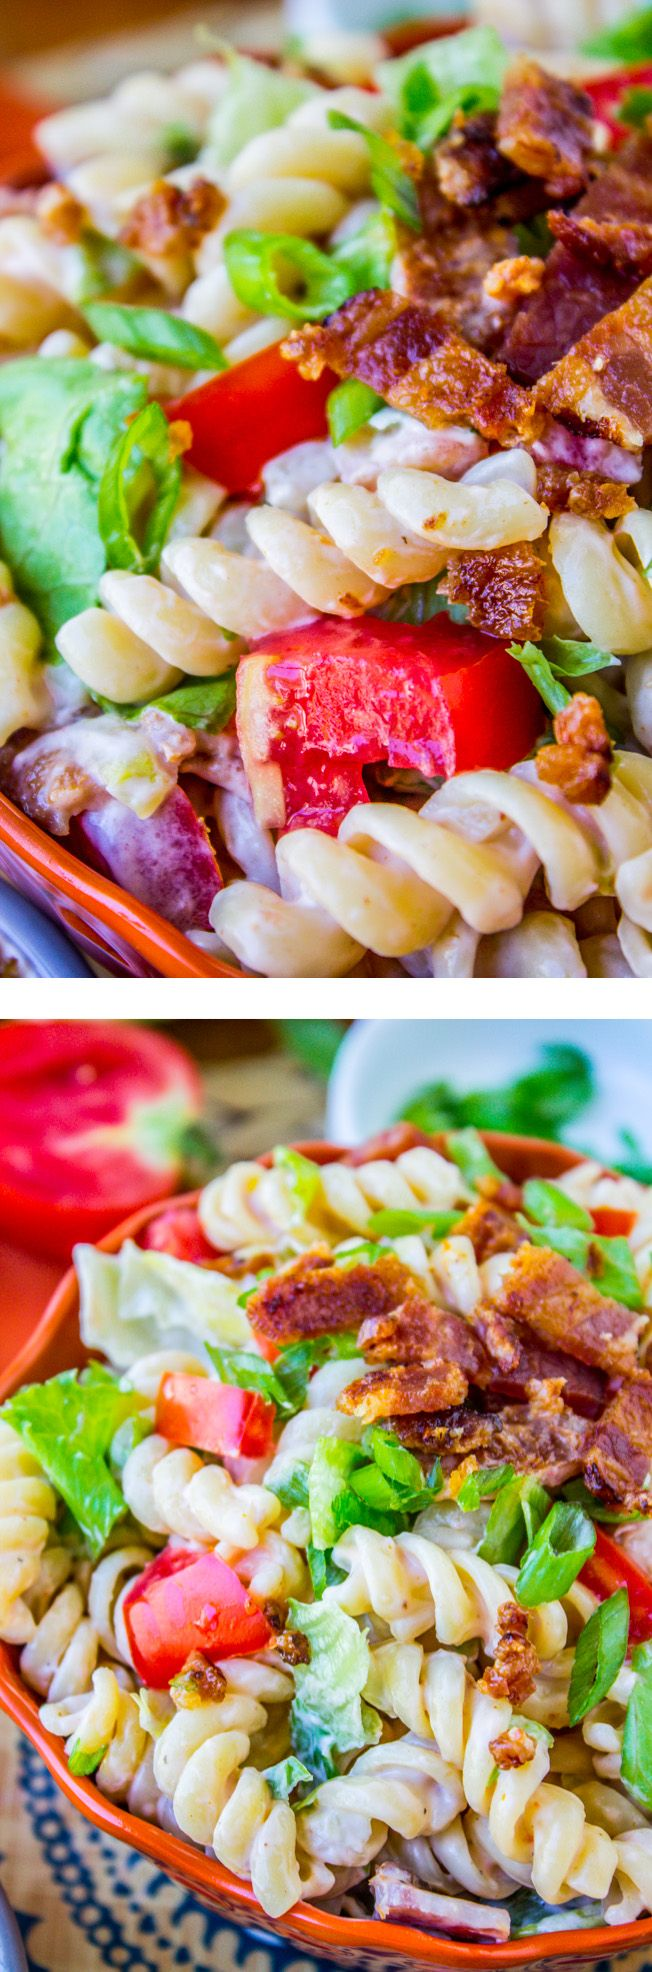 Easy BLT Pasta Salad from The Food Charlatan // This is a great no-brainer dinner! Or perfect side dish for the potluck. I love summer tomatoes!